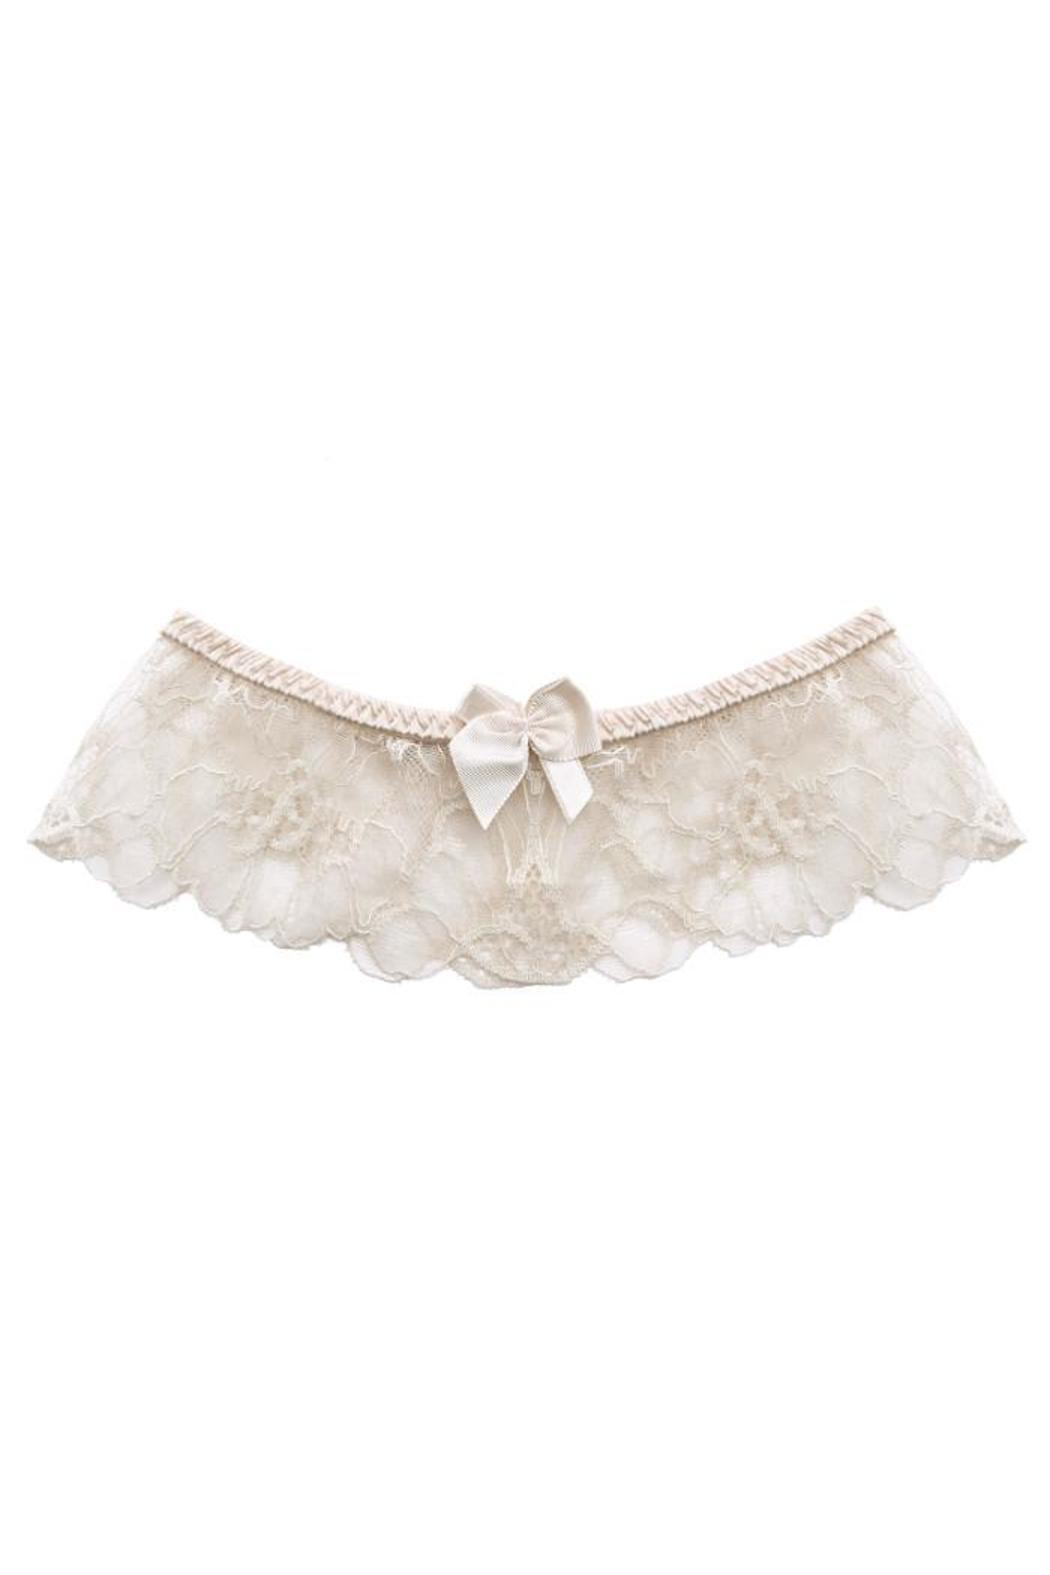 2e0d5eb56898a Stella McCartney Erin Wishing Garter from Vancouver by Scarlet ...